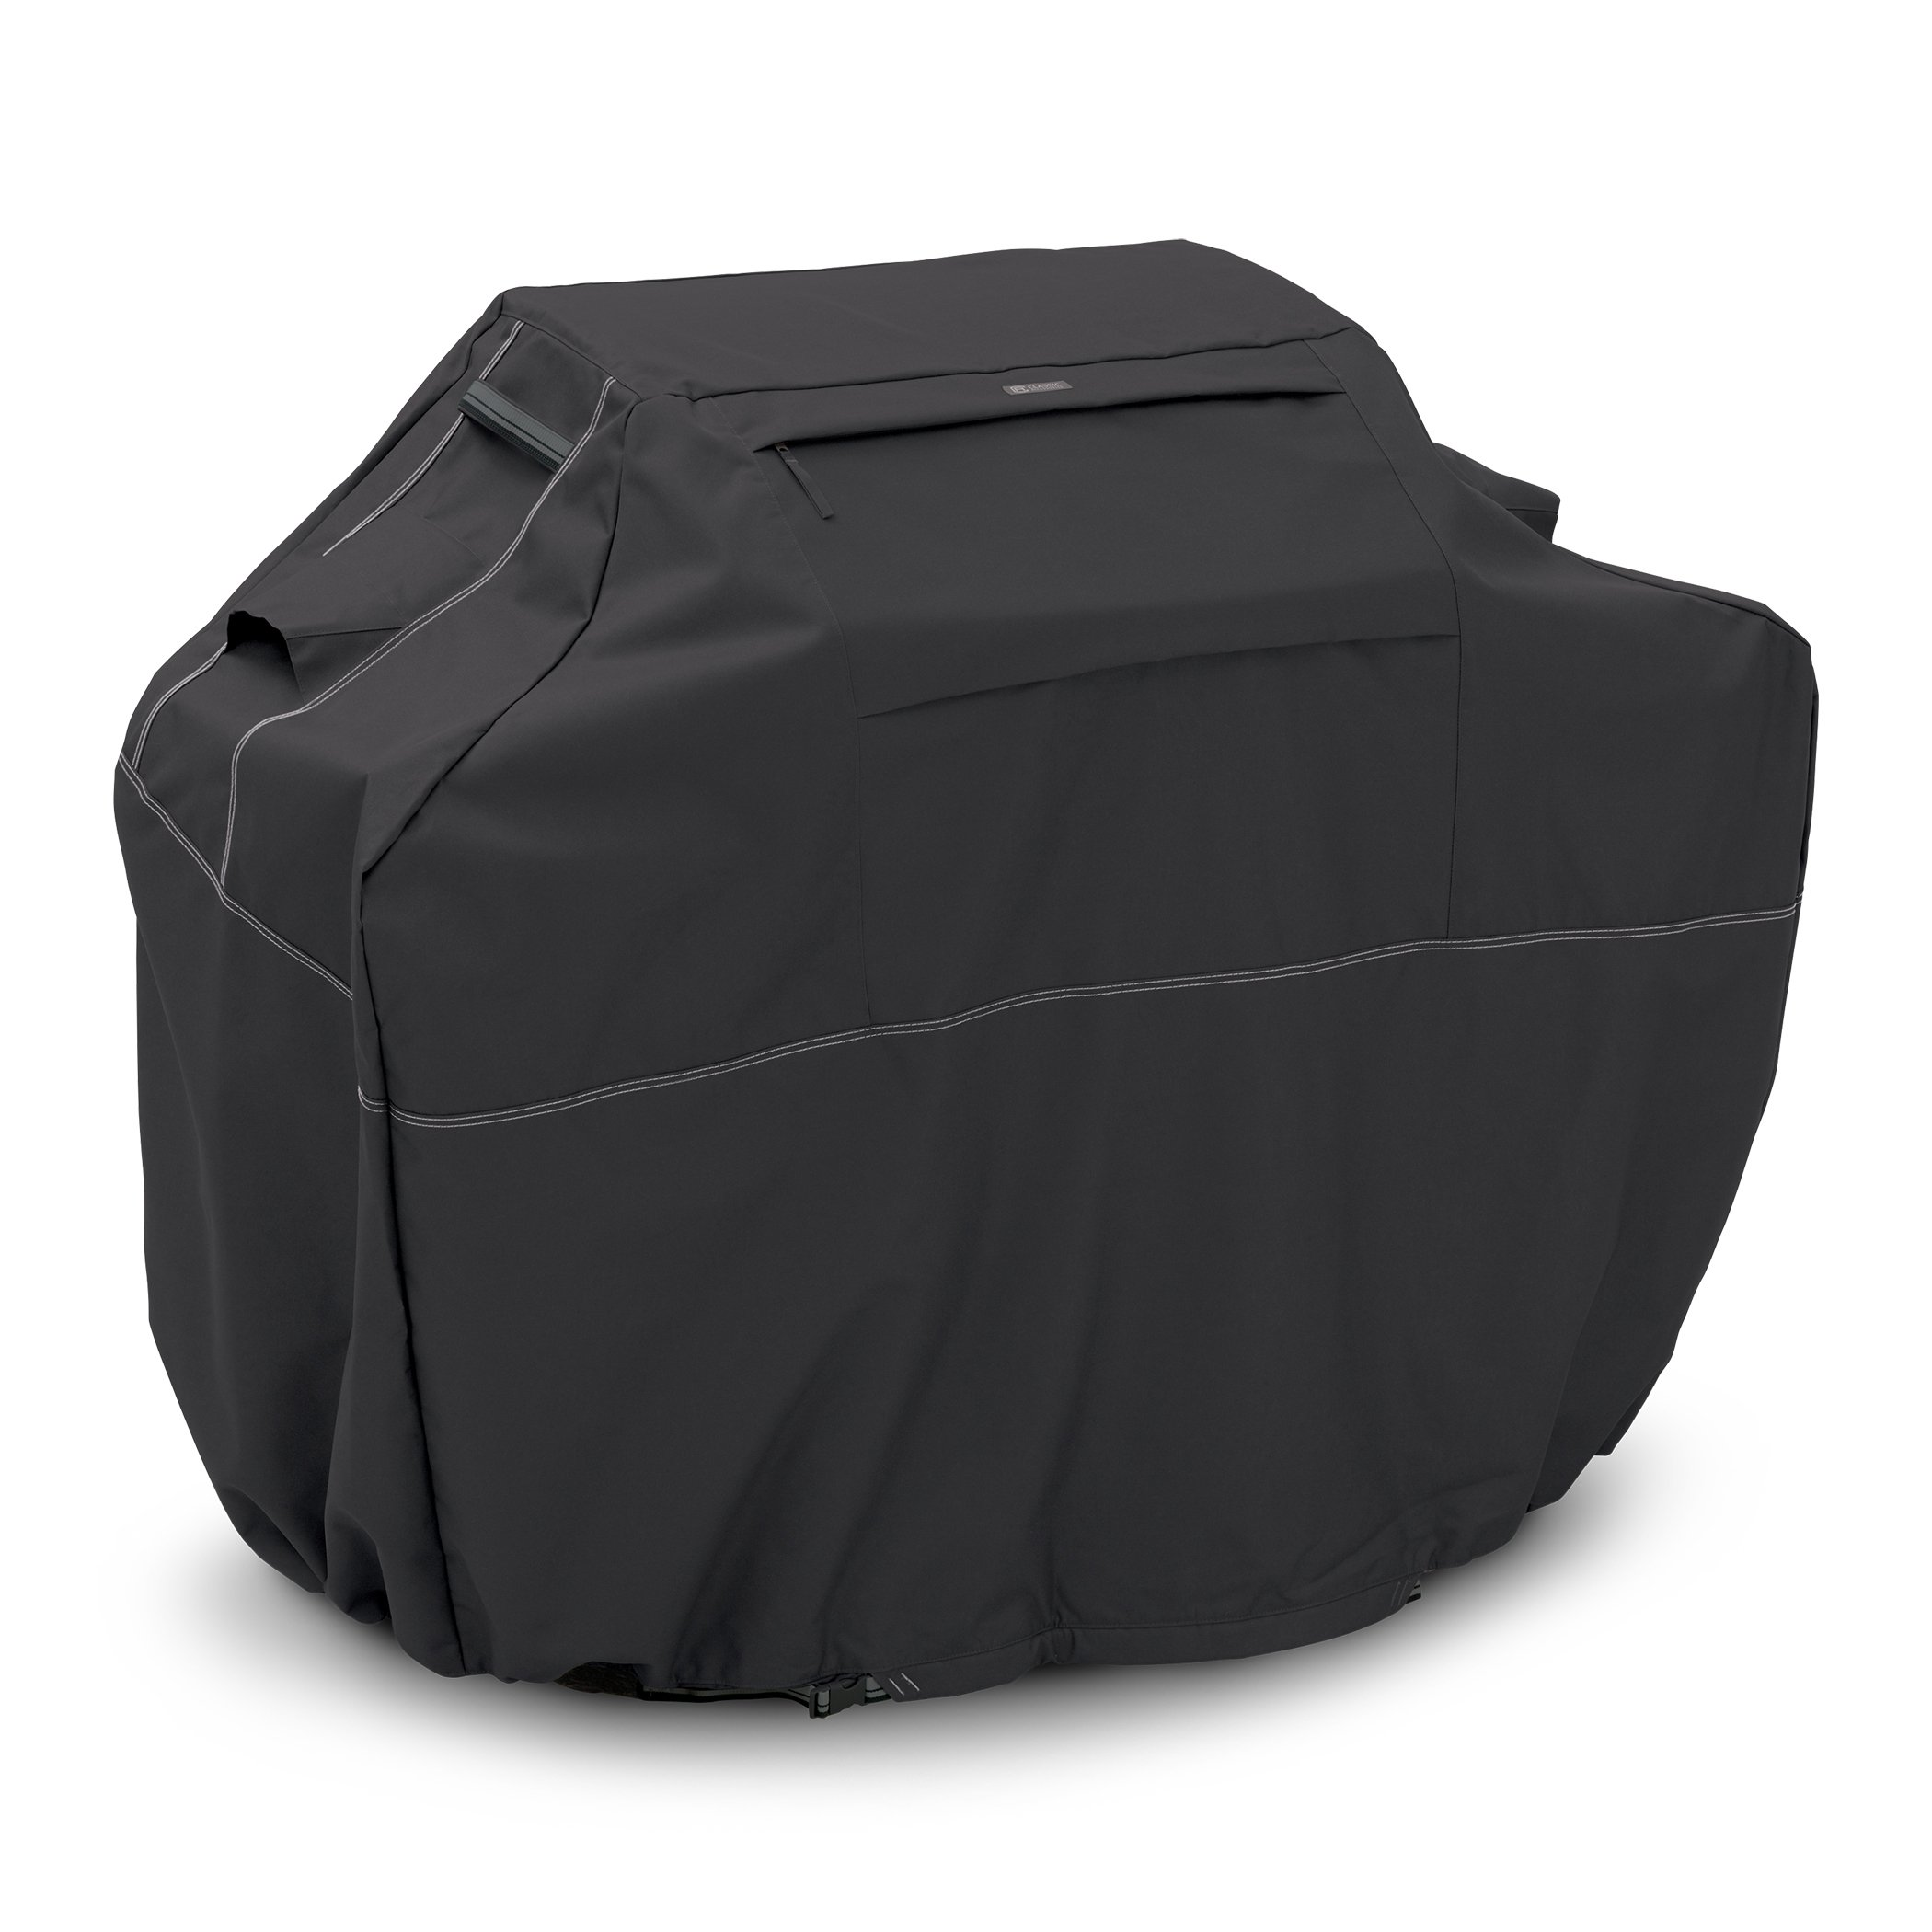 Classic Accessories 55-562-040401-00 Grill Cover - Heavy-Duty BBQ Cover with Sunbrella Fabric and Ten-Year Warranty, Large, 64-Inch